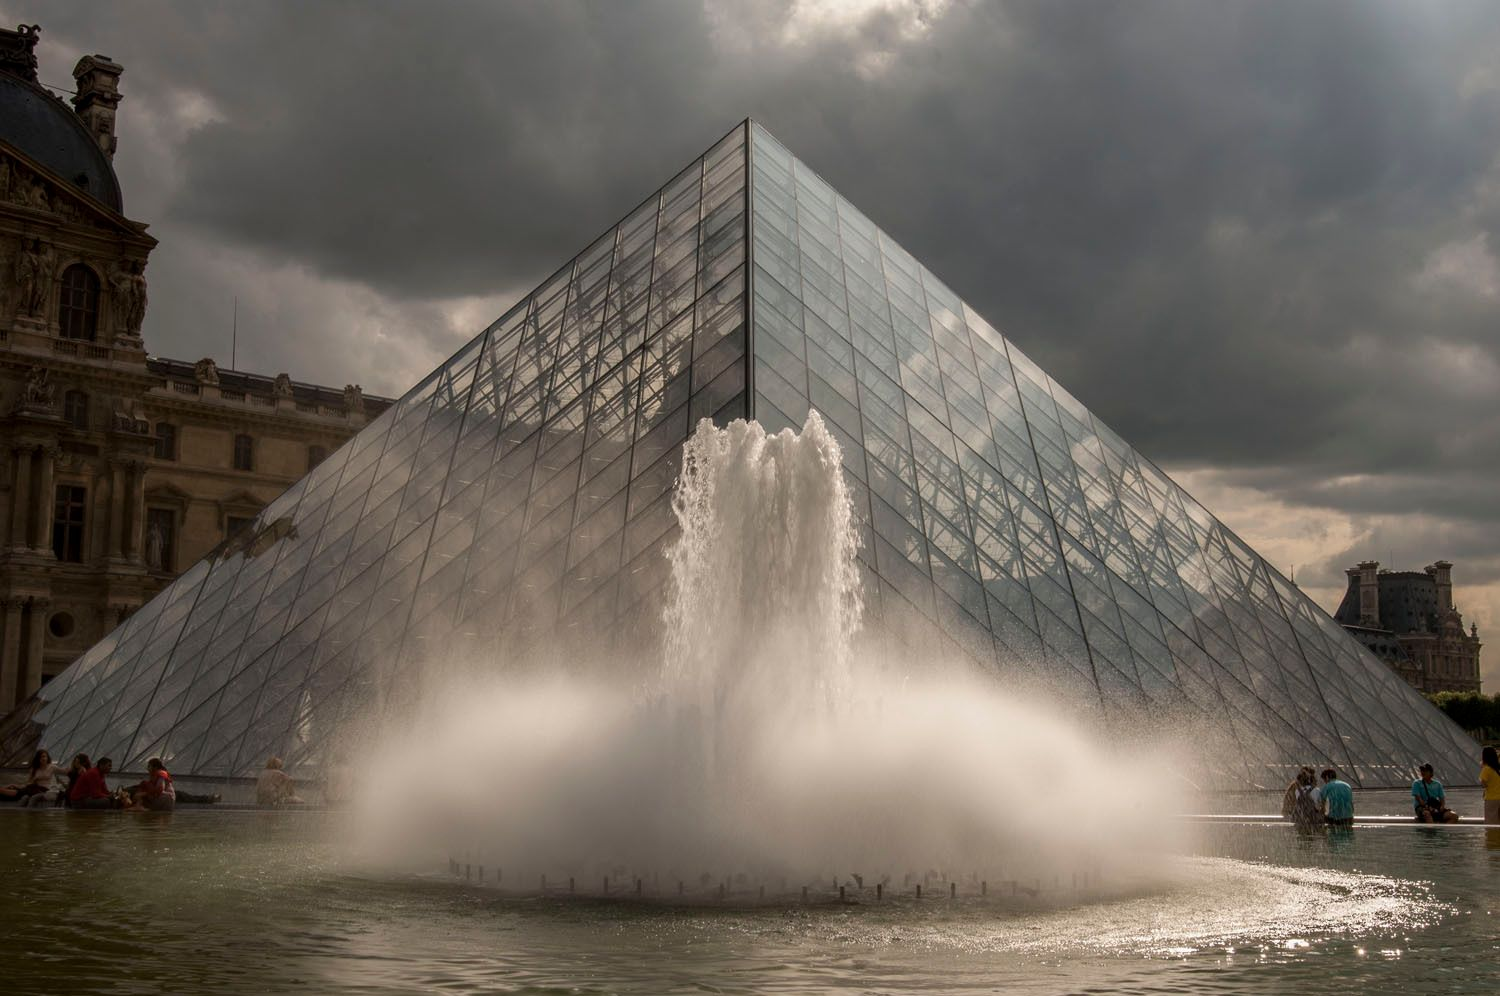 Glass Pyramid, The Louvre, Paris, France